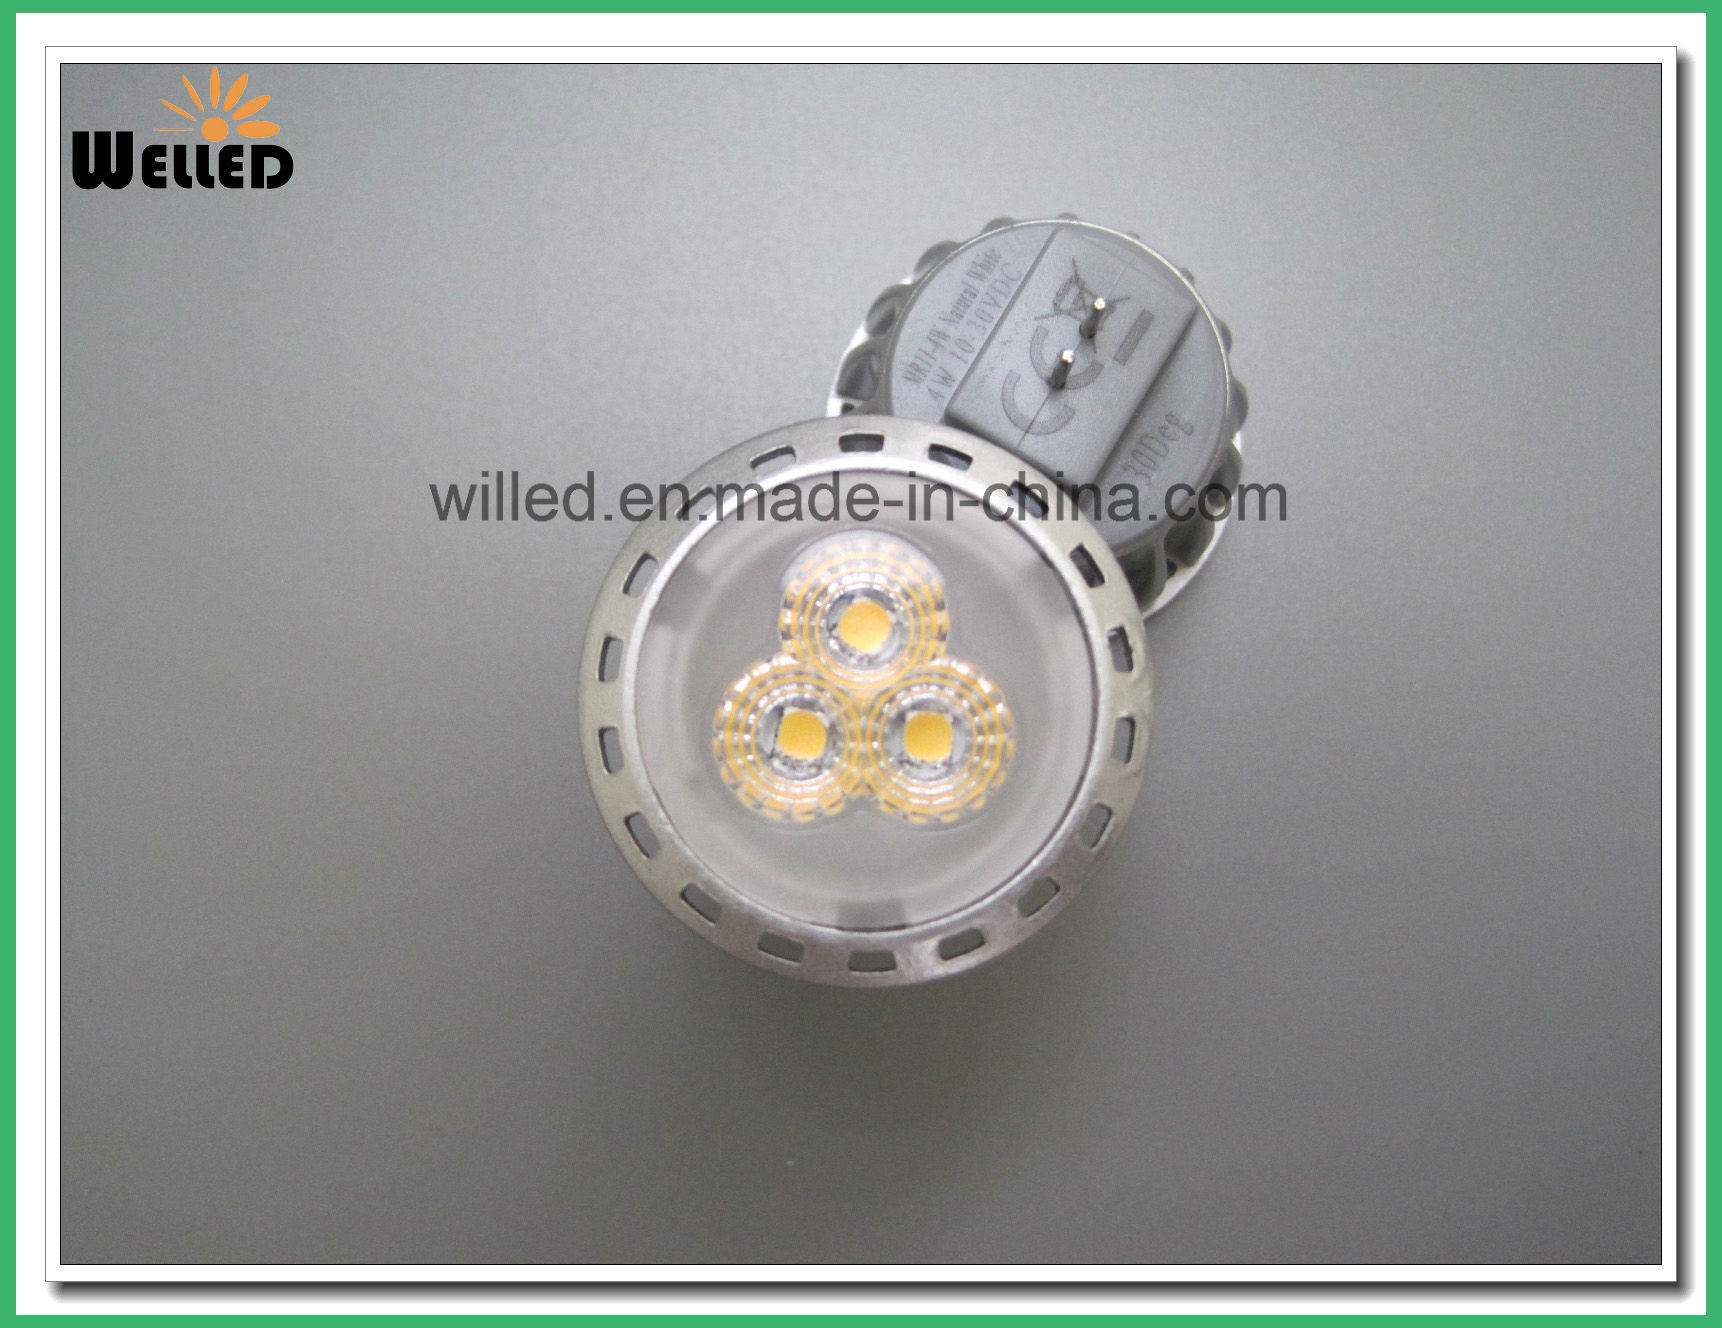 12V 10-30VDC Energy Saving MR11 LED Spotlight Spot Light 2W 4W Gu4.0